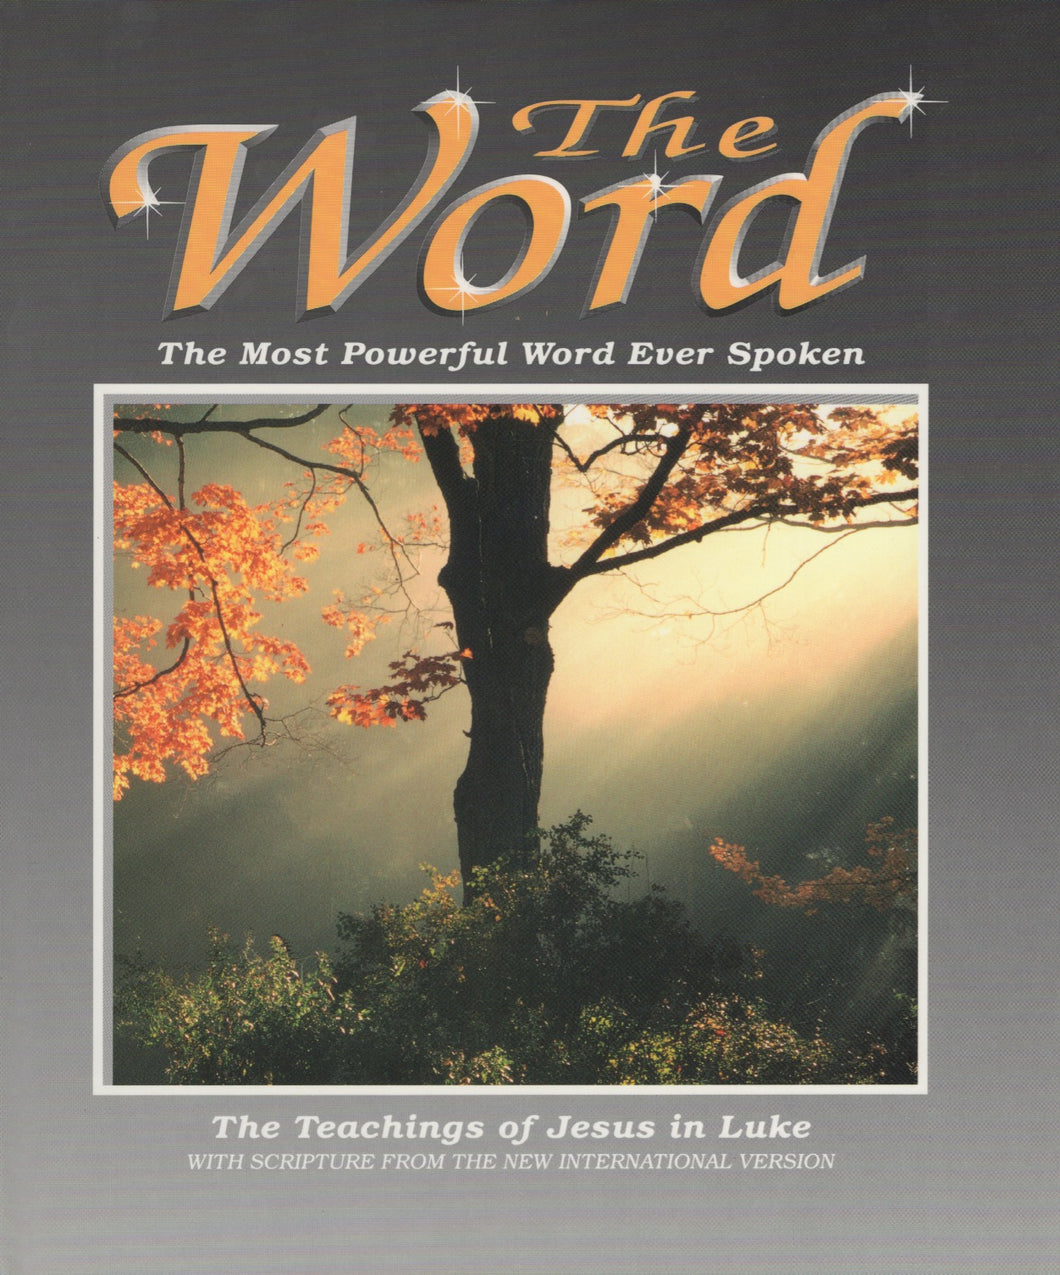 The Word (2): The Most Powerful Word Ever Spoken: The Teachings of Jesus in Luke